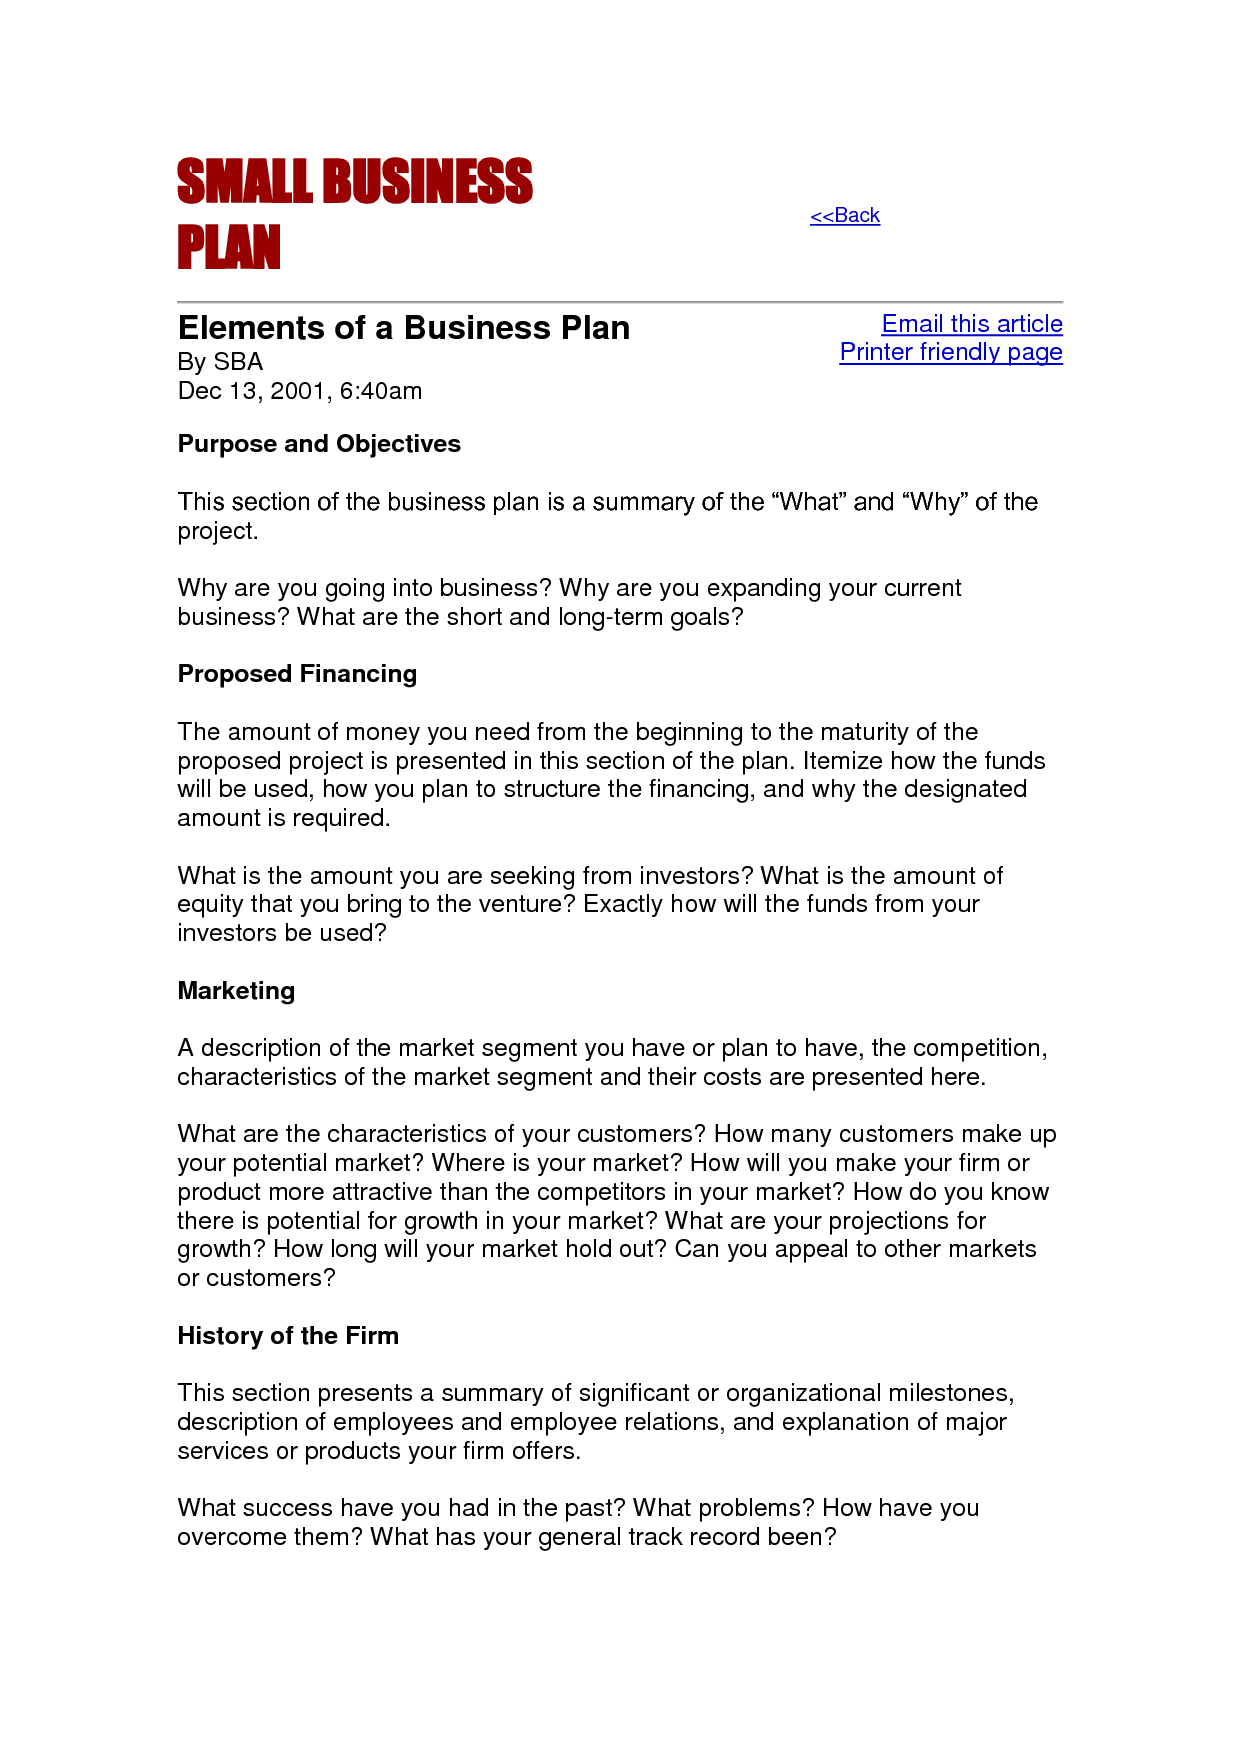 Small business proposal template building a stronger small small business proposal template building a stronger small business community at topgovernmentgrantssbdcp fbccfo Choice Image